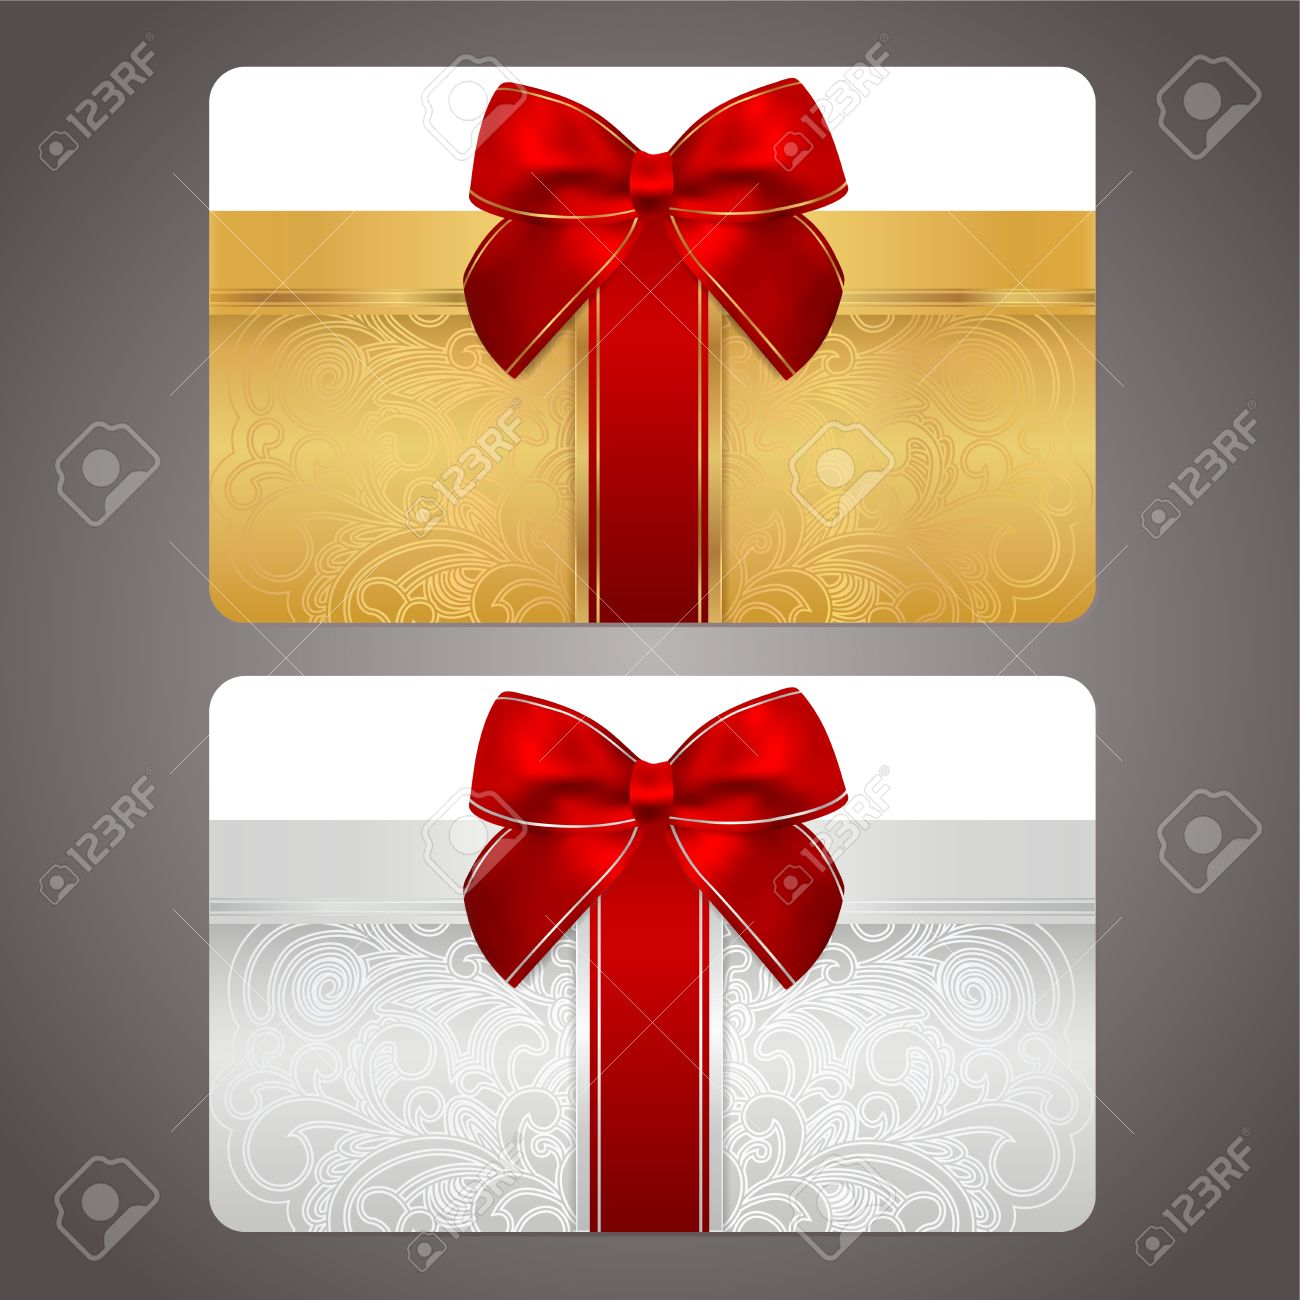 Golden and silver gift card  discount card  with gift box and red bow  ribbons   This background design usable for gift coupon, voucher, invitation, ticket etc  Vector Stock Vector - 18956609